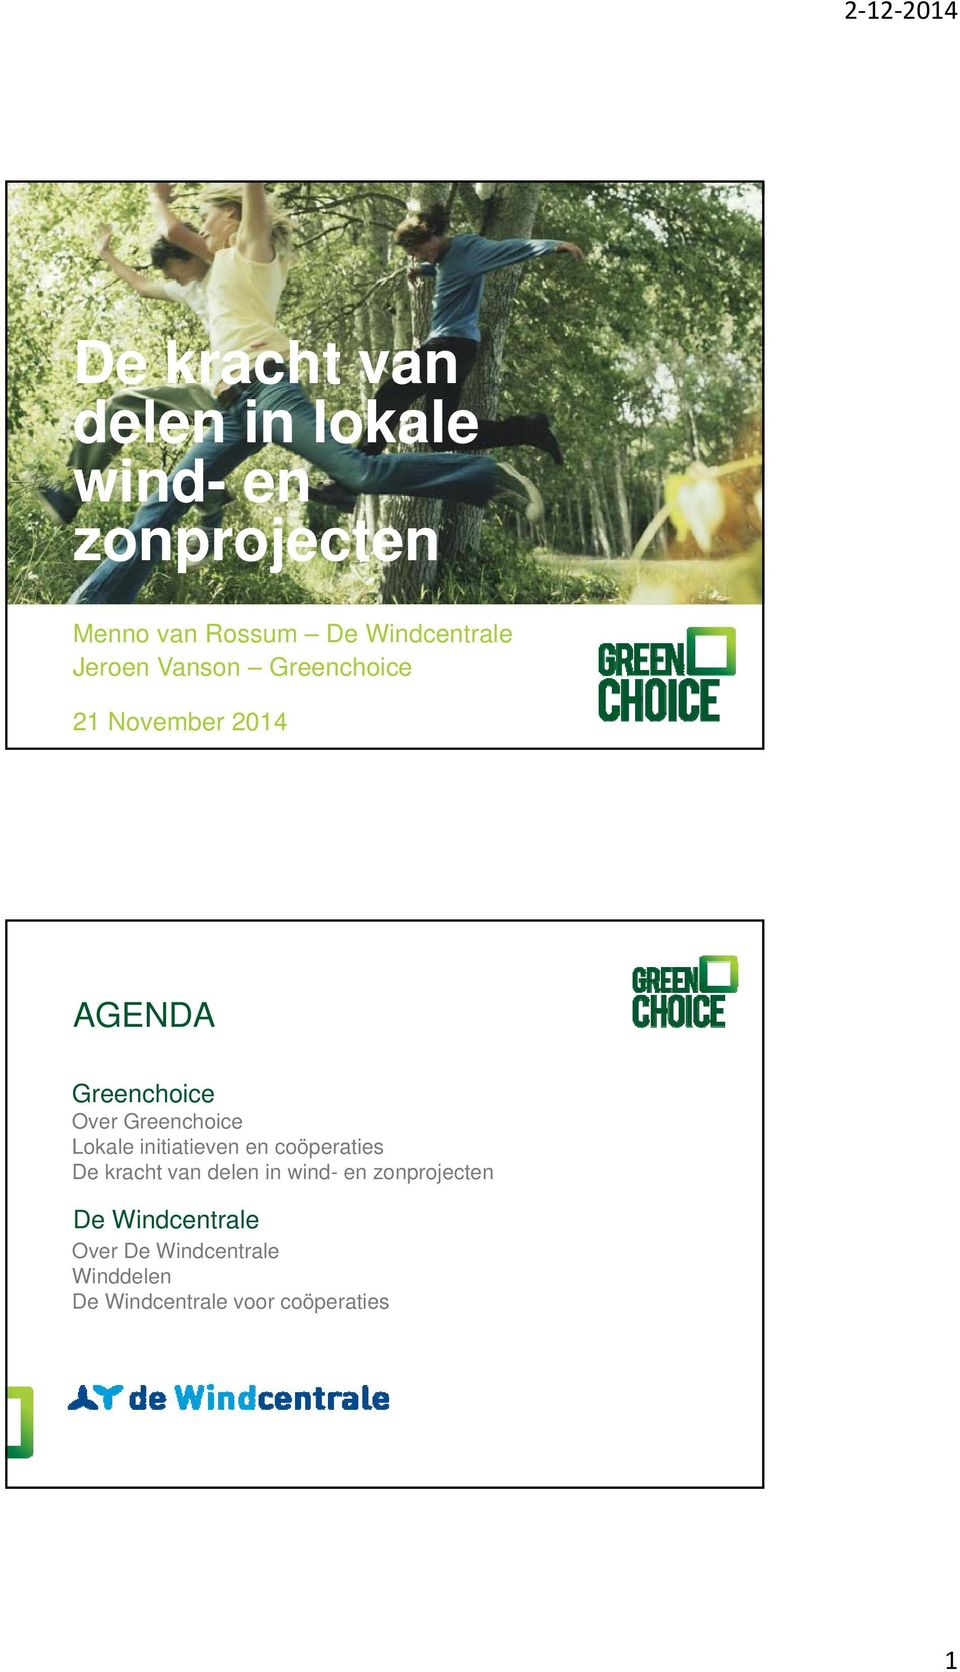 Greenchoice Lokale initiatieven en coöperaties De kracht van delen in wind- en